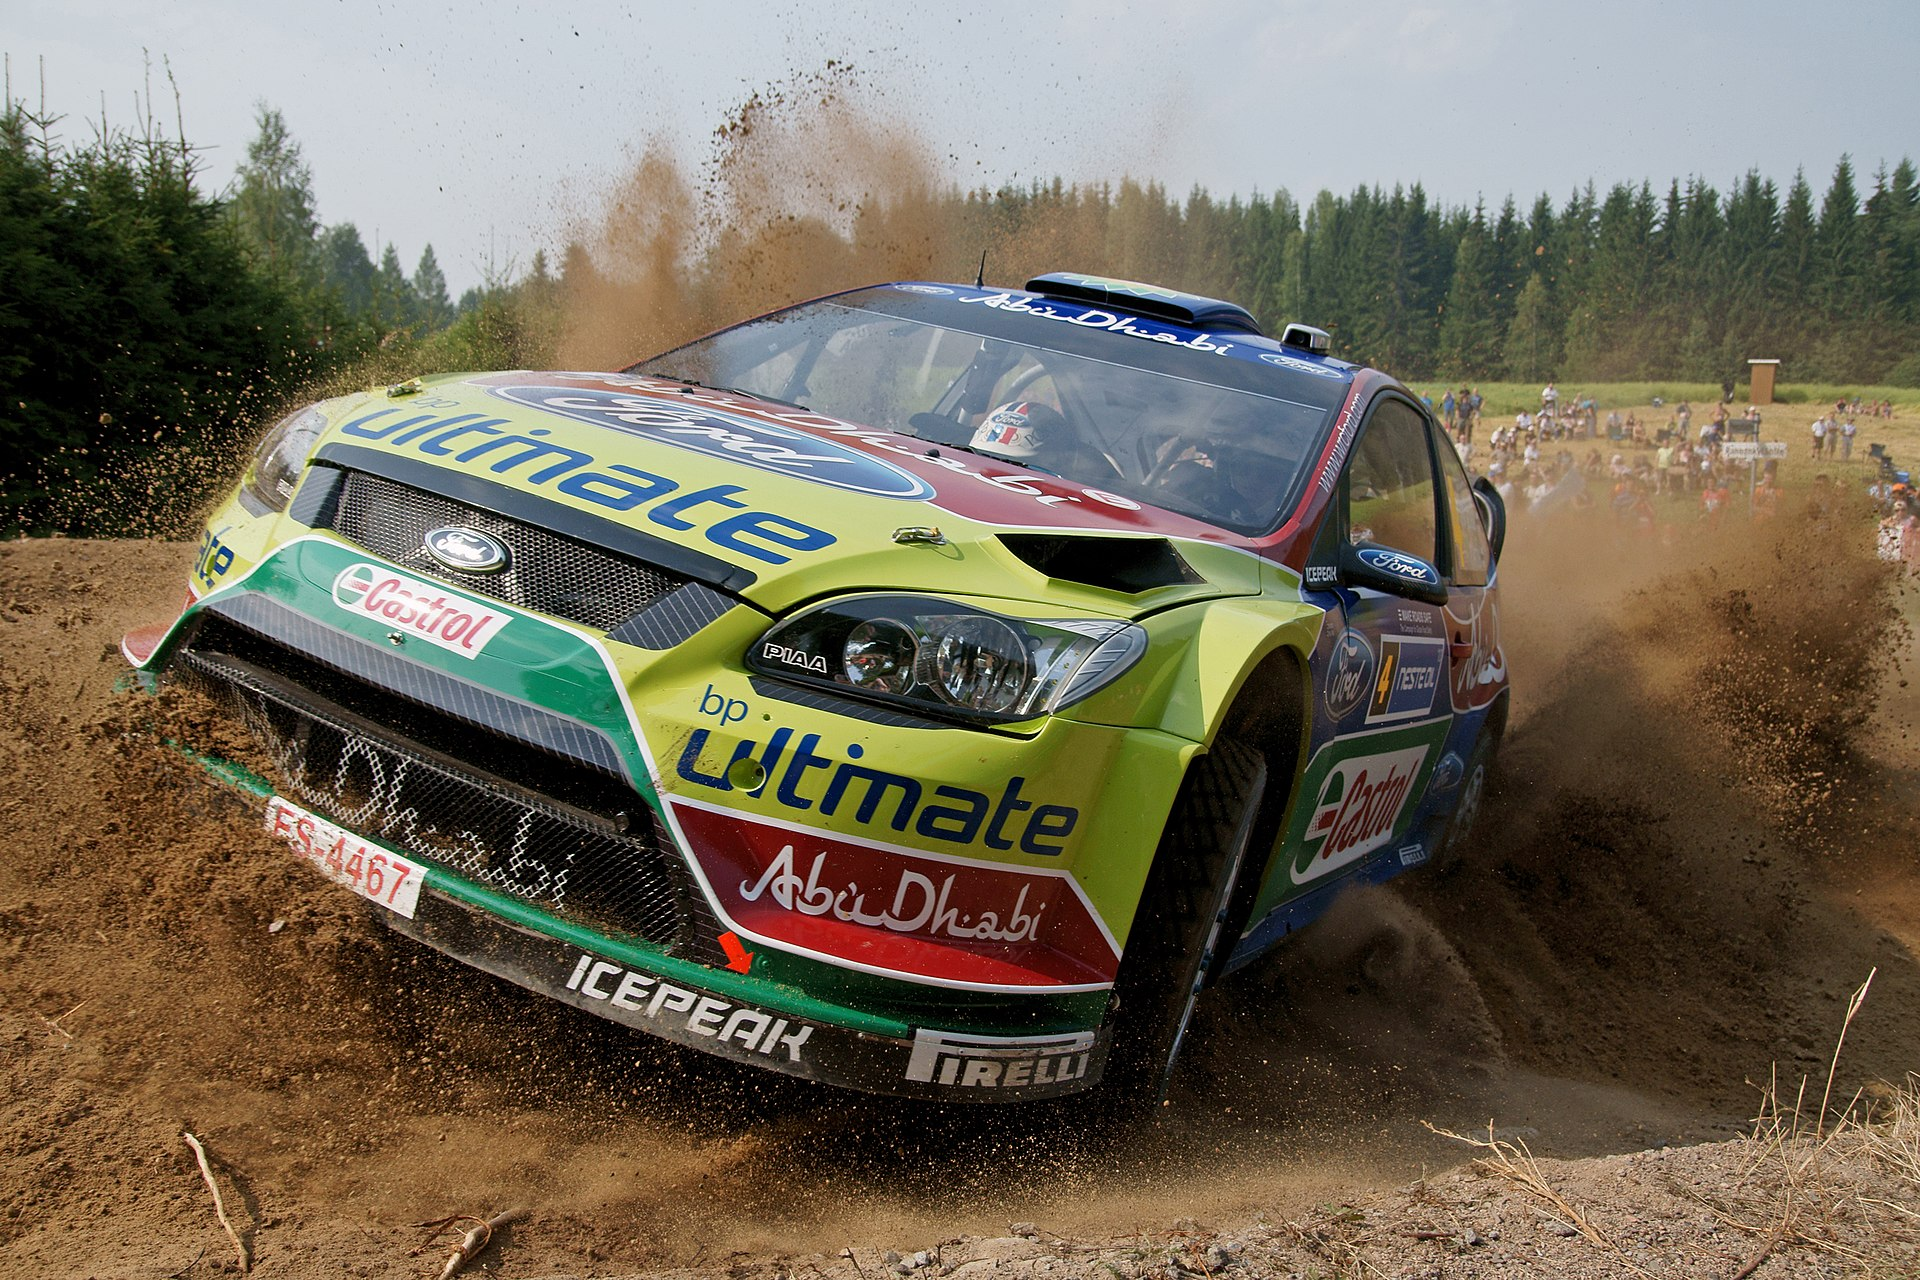 Do Rally Cars Use Dual Clutch Transmissions